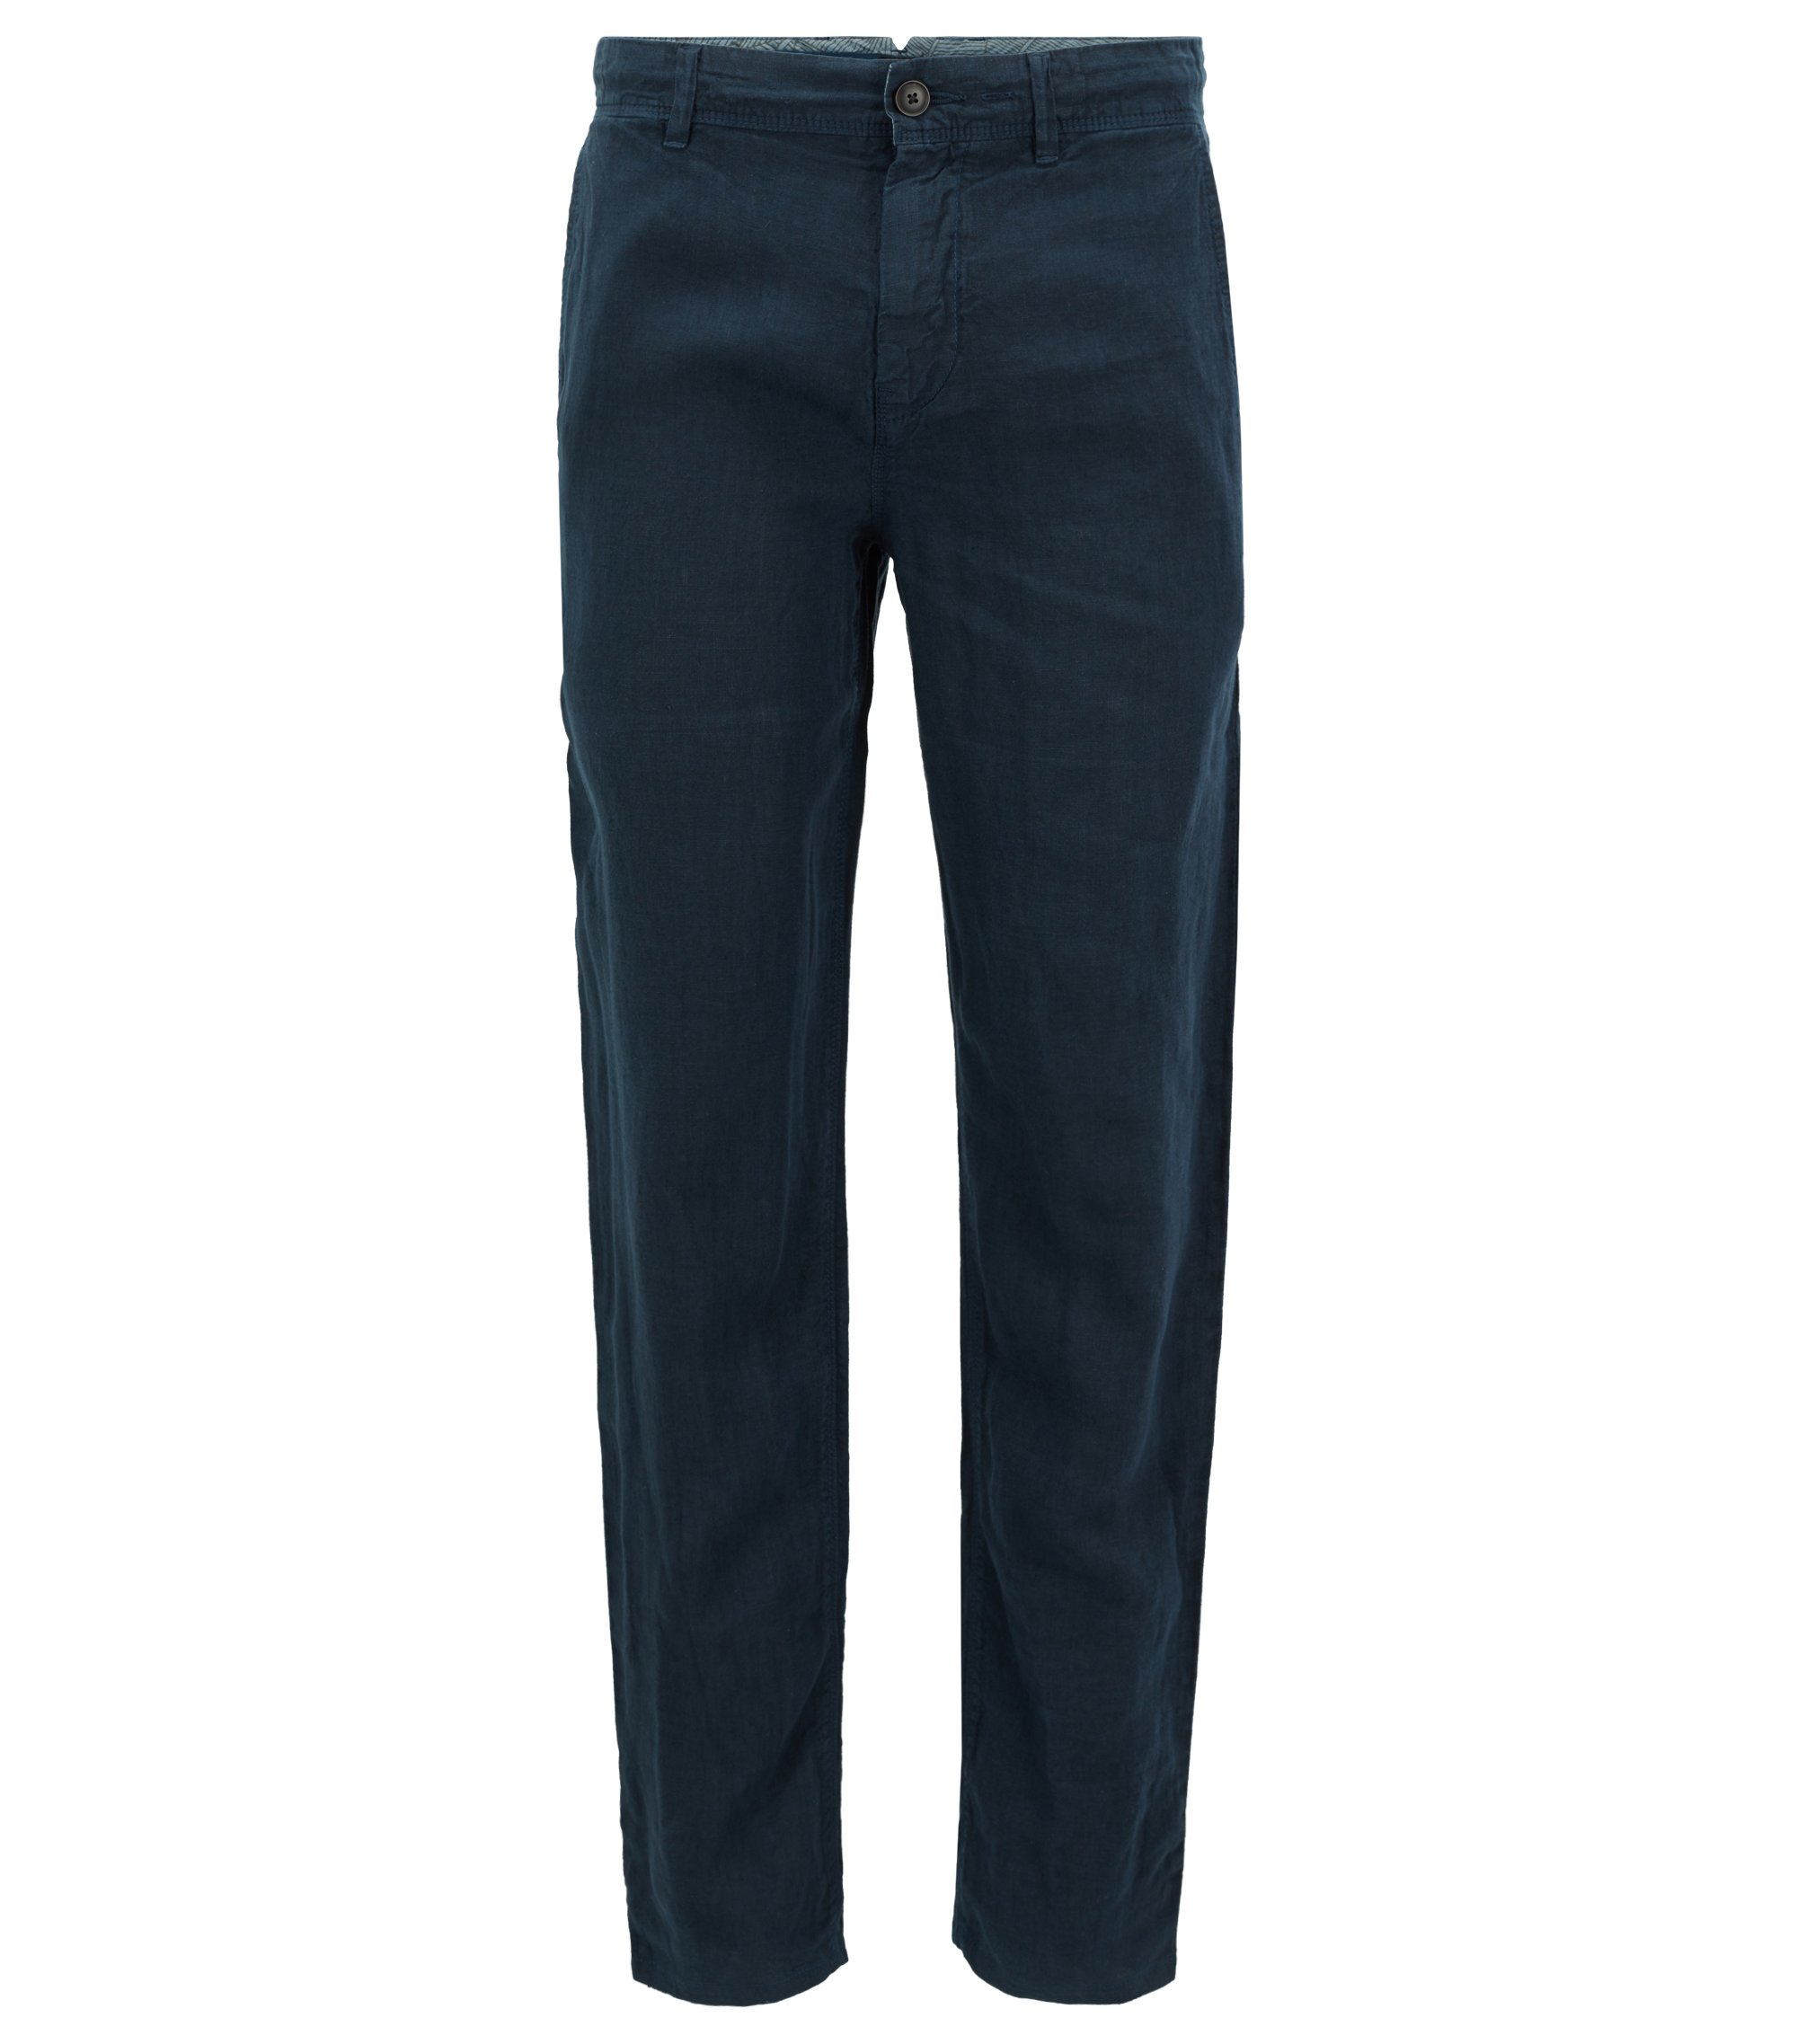 Linen Pants, Tapered Fit | Stapered4-D, Dark Blue